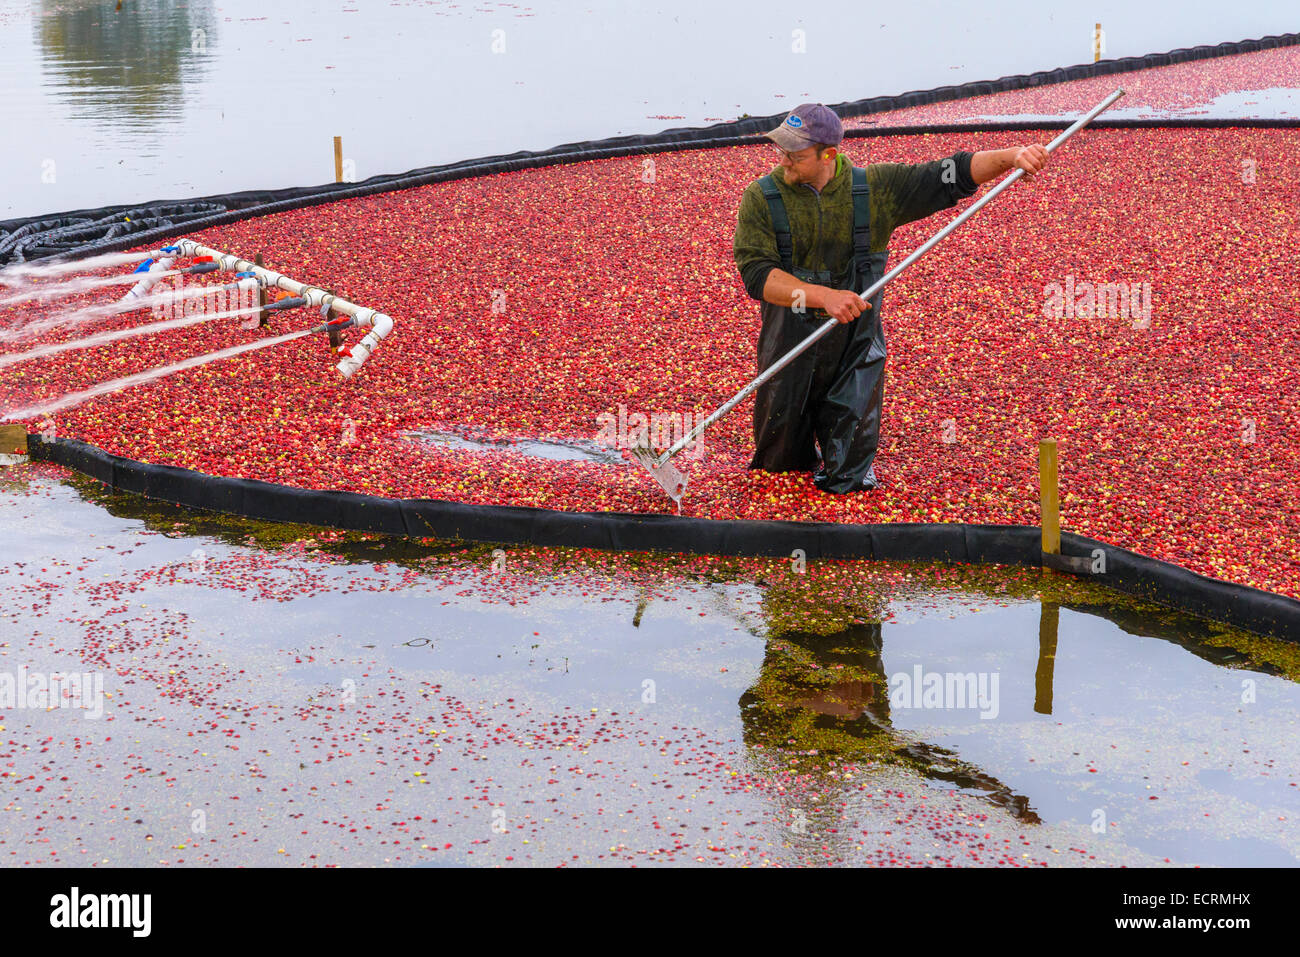 Cranberry harvest, Keefer Farms, Richmond, British Columbia, Canada - Stock Image